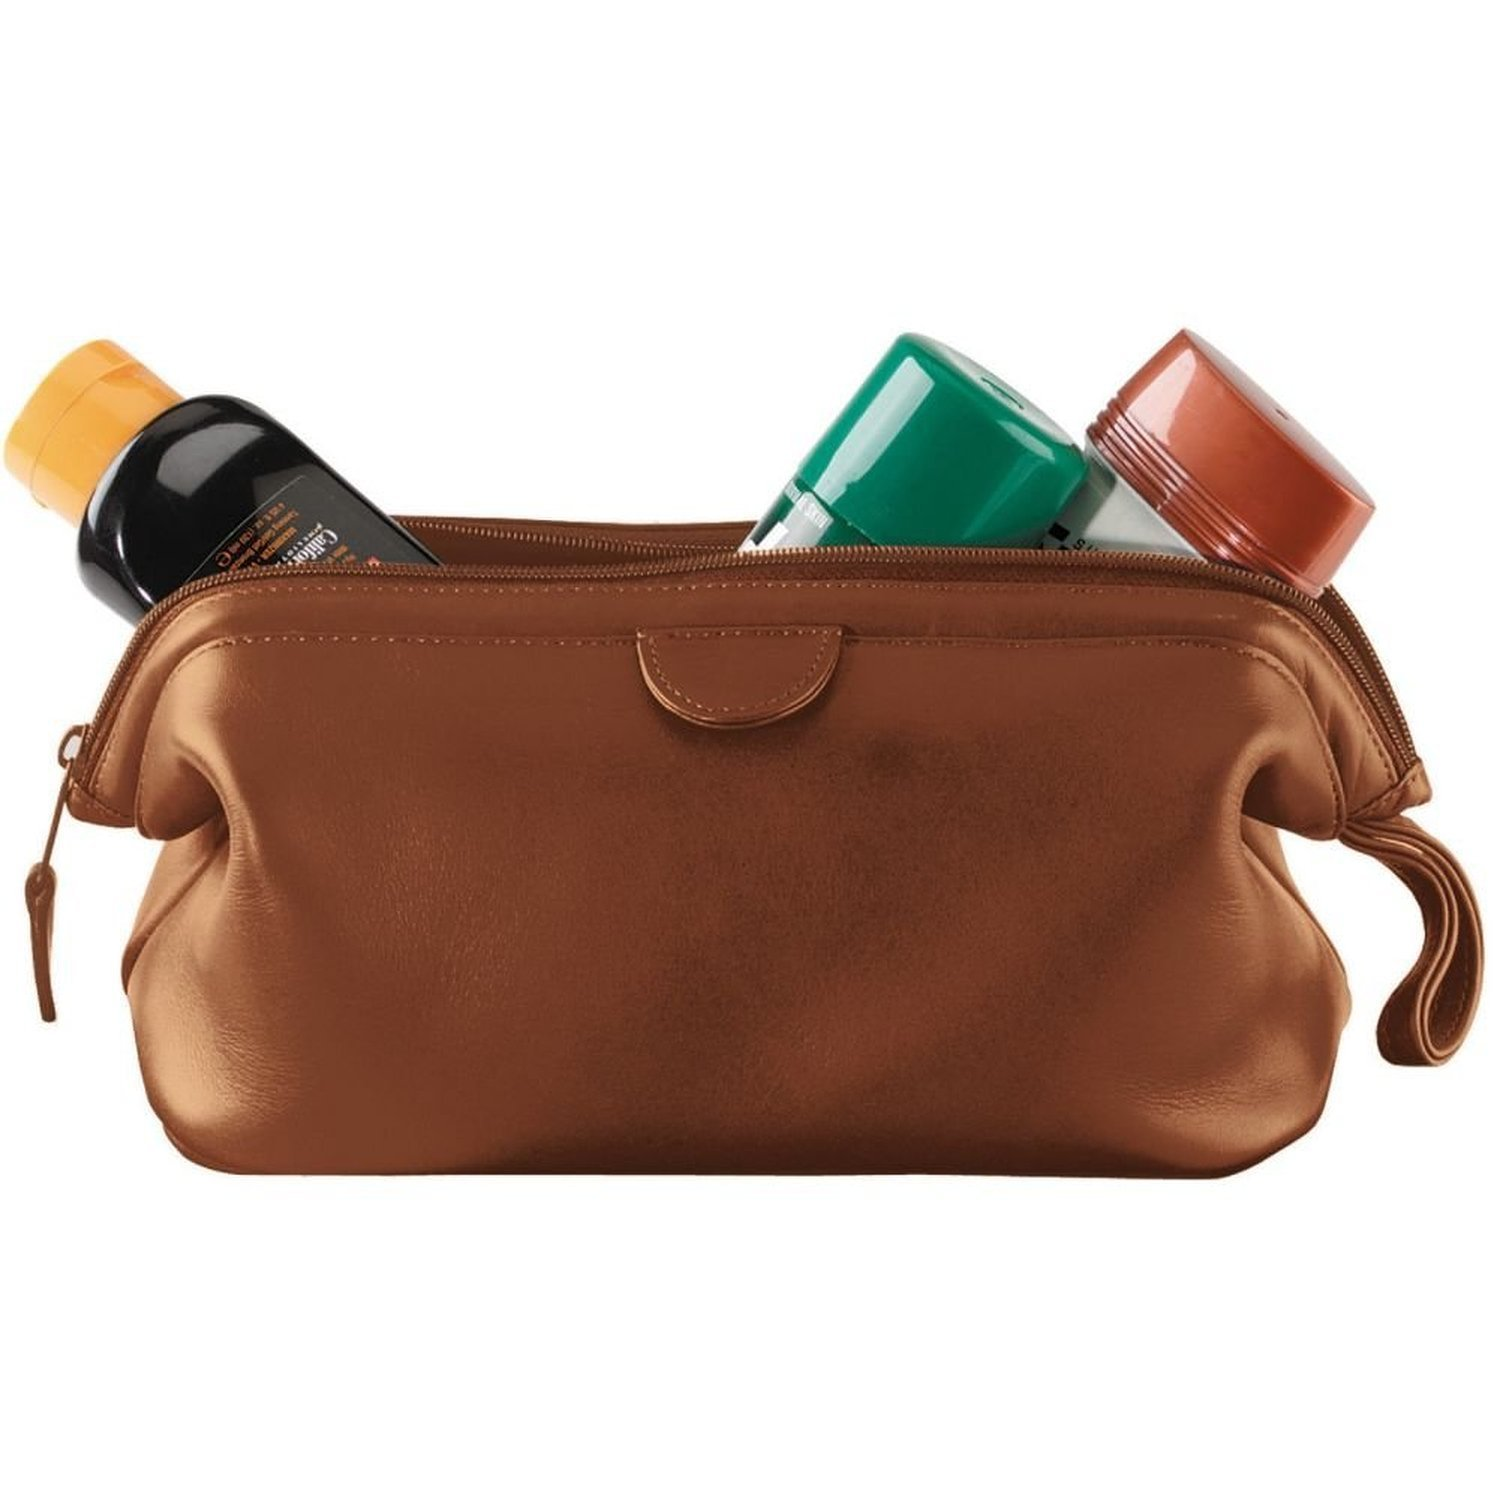 Royce Leather Travel Toiletry Wash Bag in Leather, Tan 1